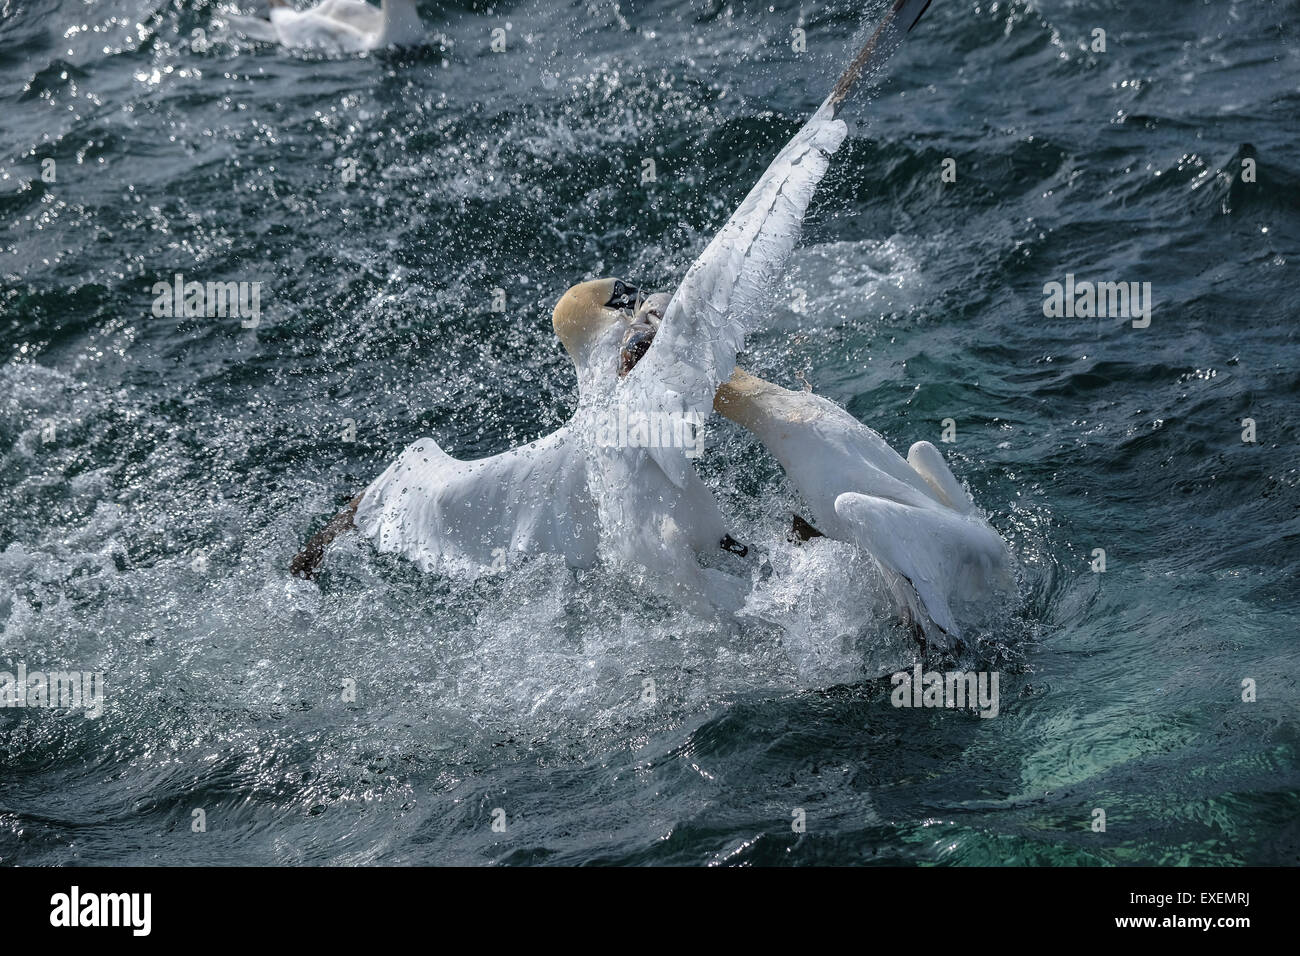 Two northern gannets fight over a fish, splashing the ocean sea surface. - Stock Image